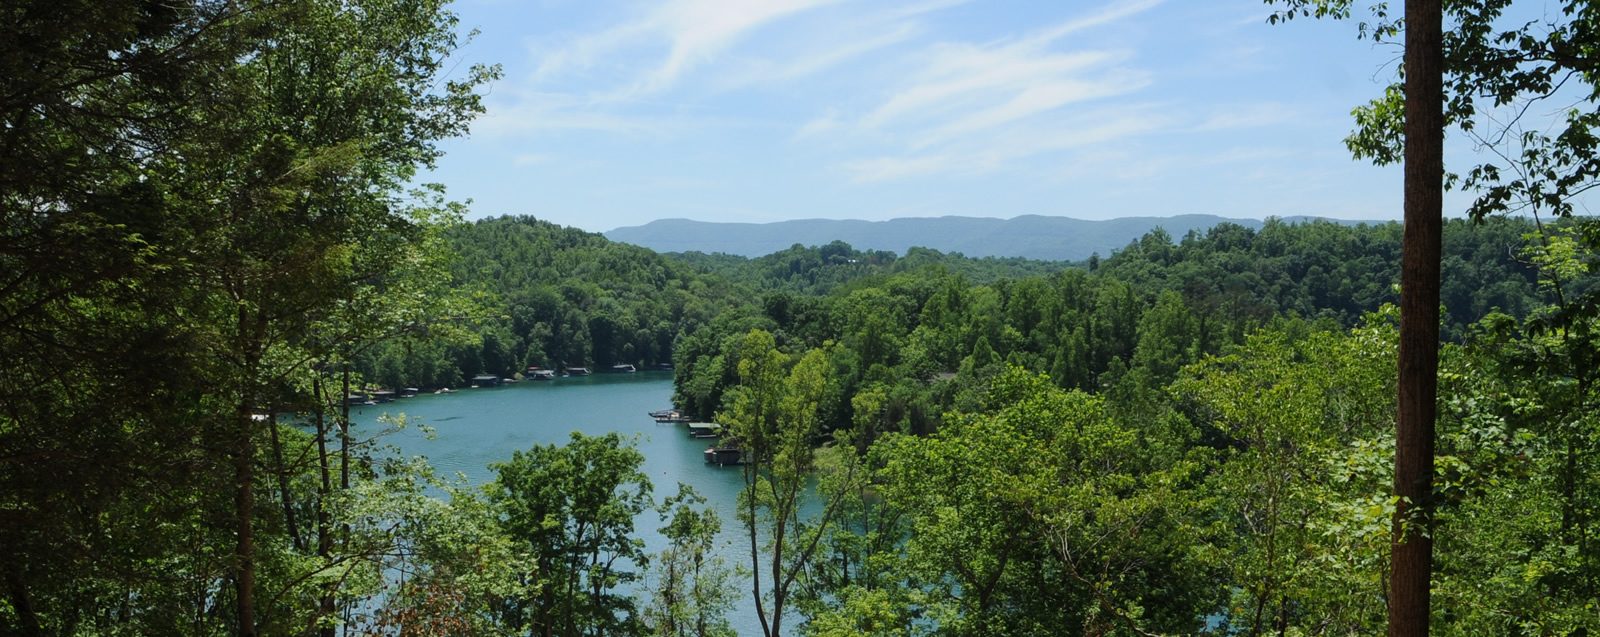 WE BUILD QUALITY<br> LAKE HOMES ON NORRIS LAKE